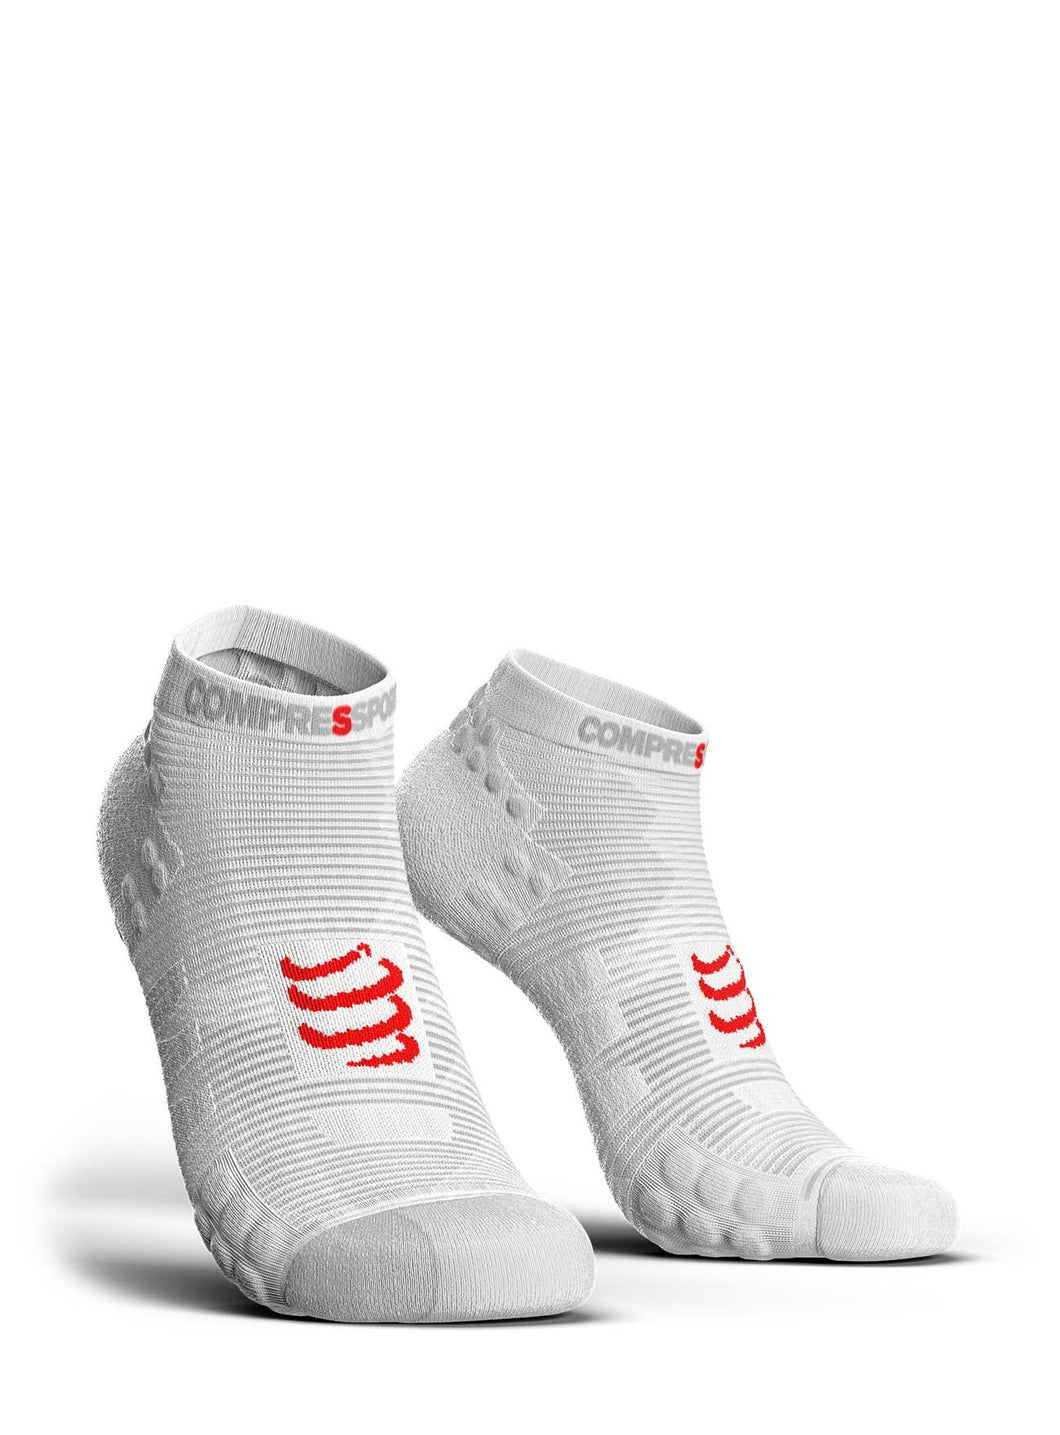 PRORACING SOCKS V3.0 - RUN LOW